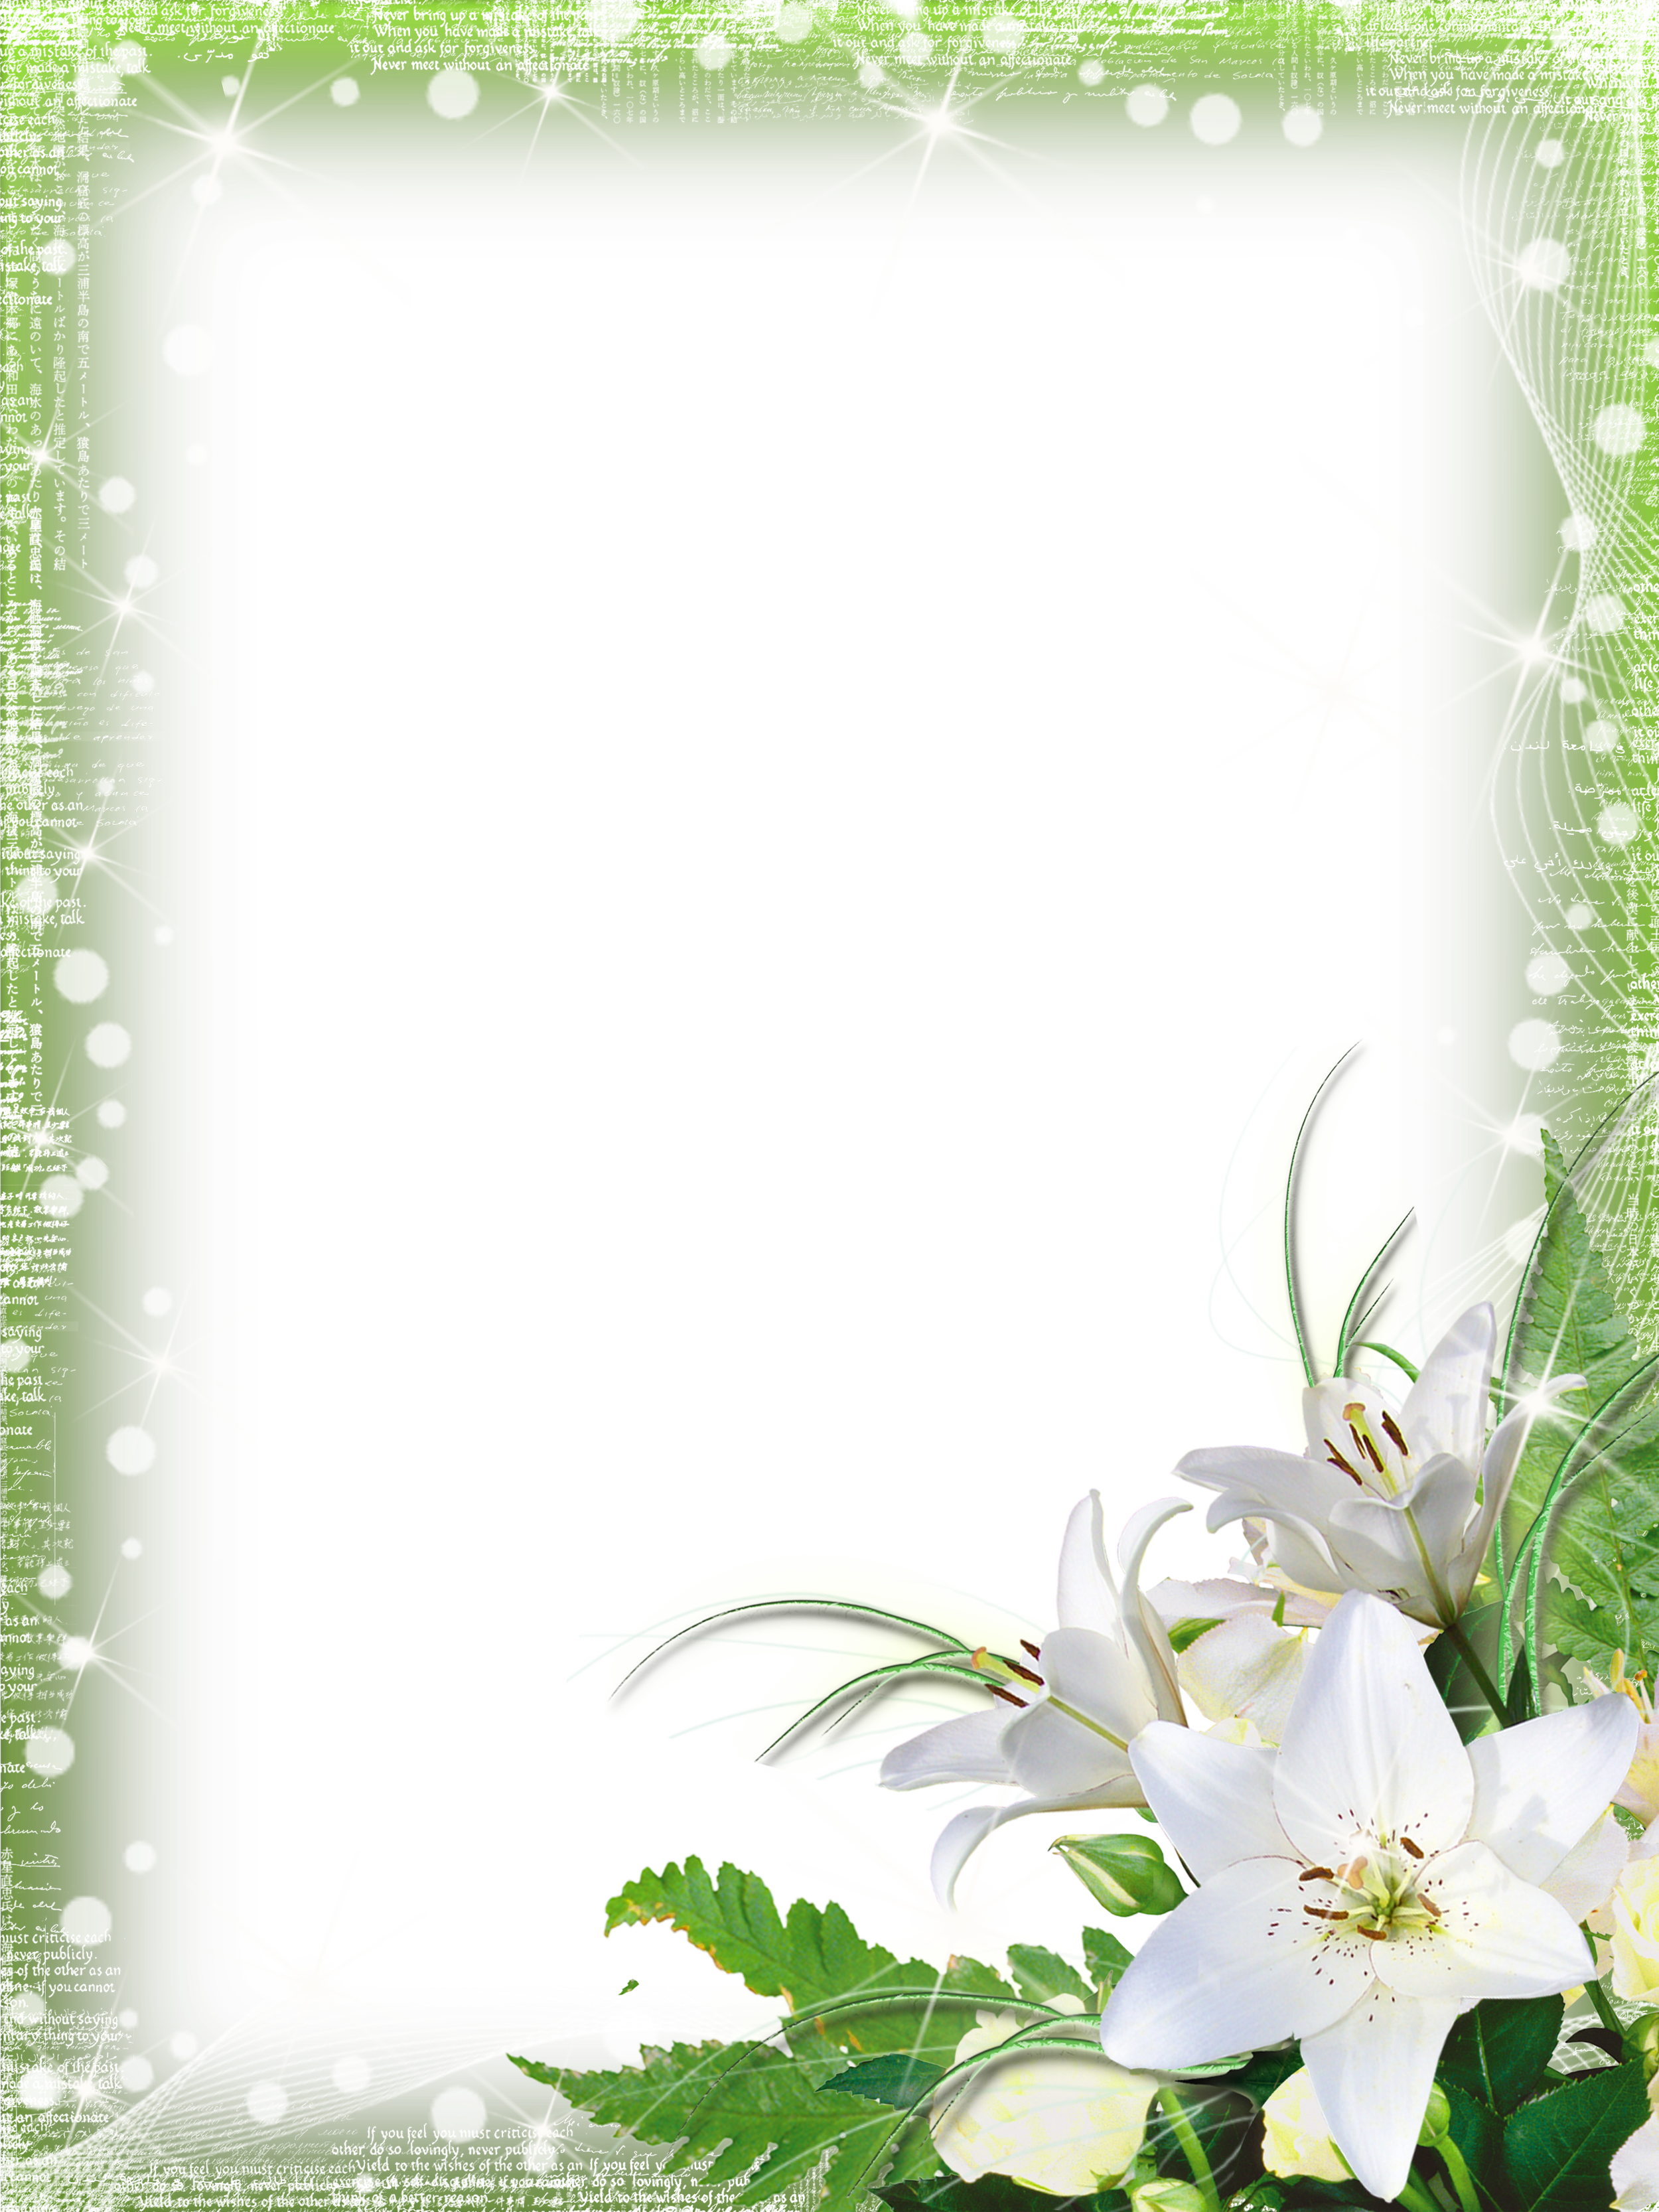 Vertical flower border clipart vector transparent Green-PNG Photo Frame with Flowers | Photos & frames | Pinterest ... vector transparent